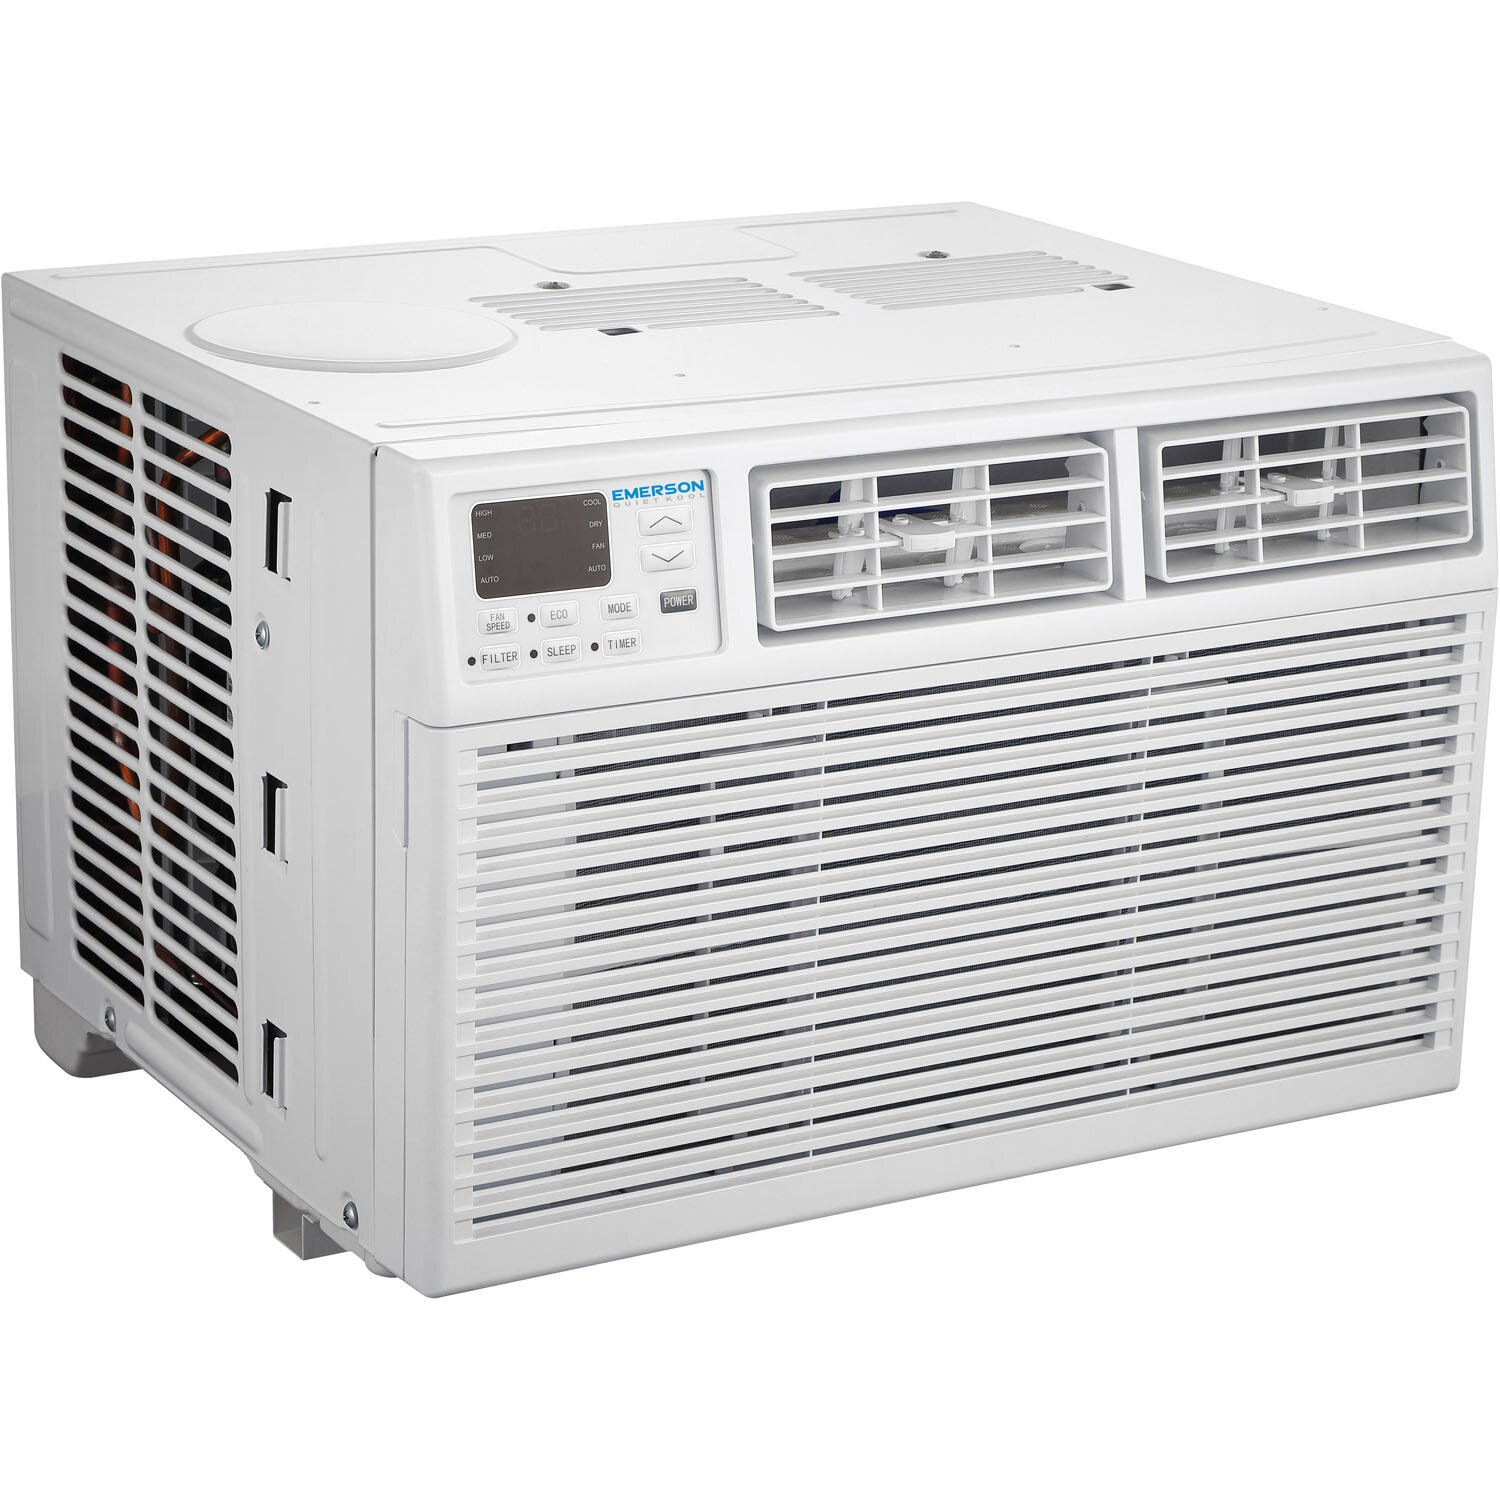 Emerson Quiet Kool Emerson Quiet Kool 12 000 Btu Window